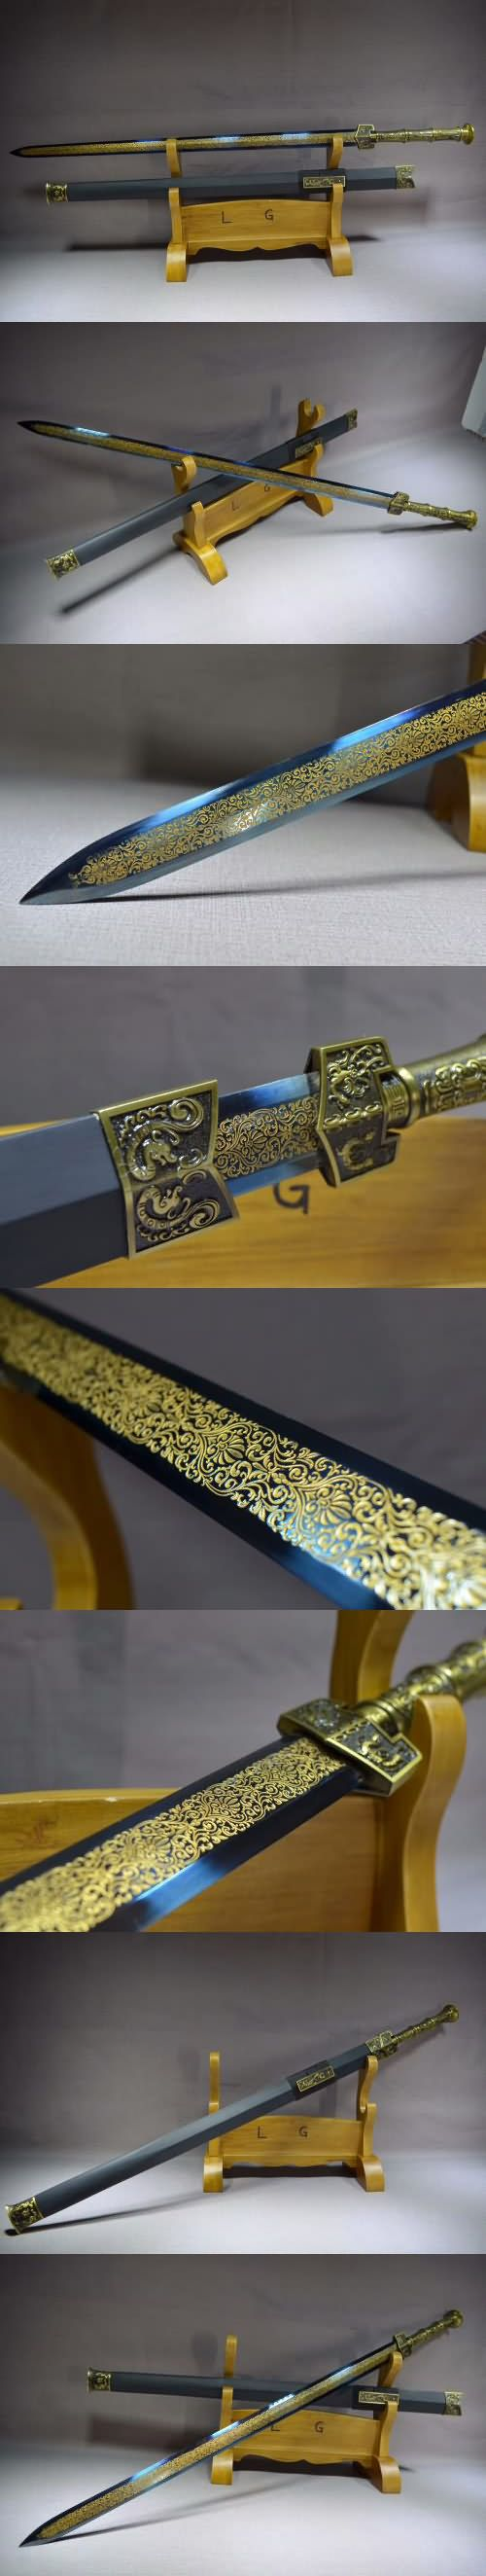 https://www.chinese-sword.com